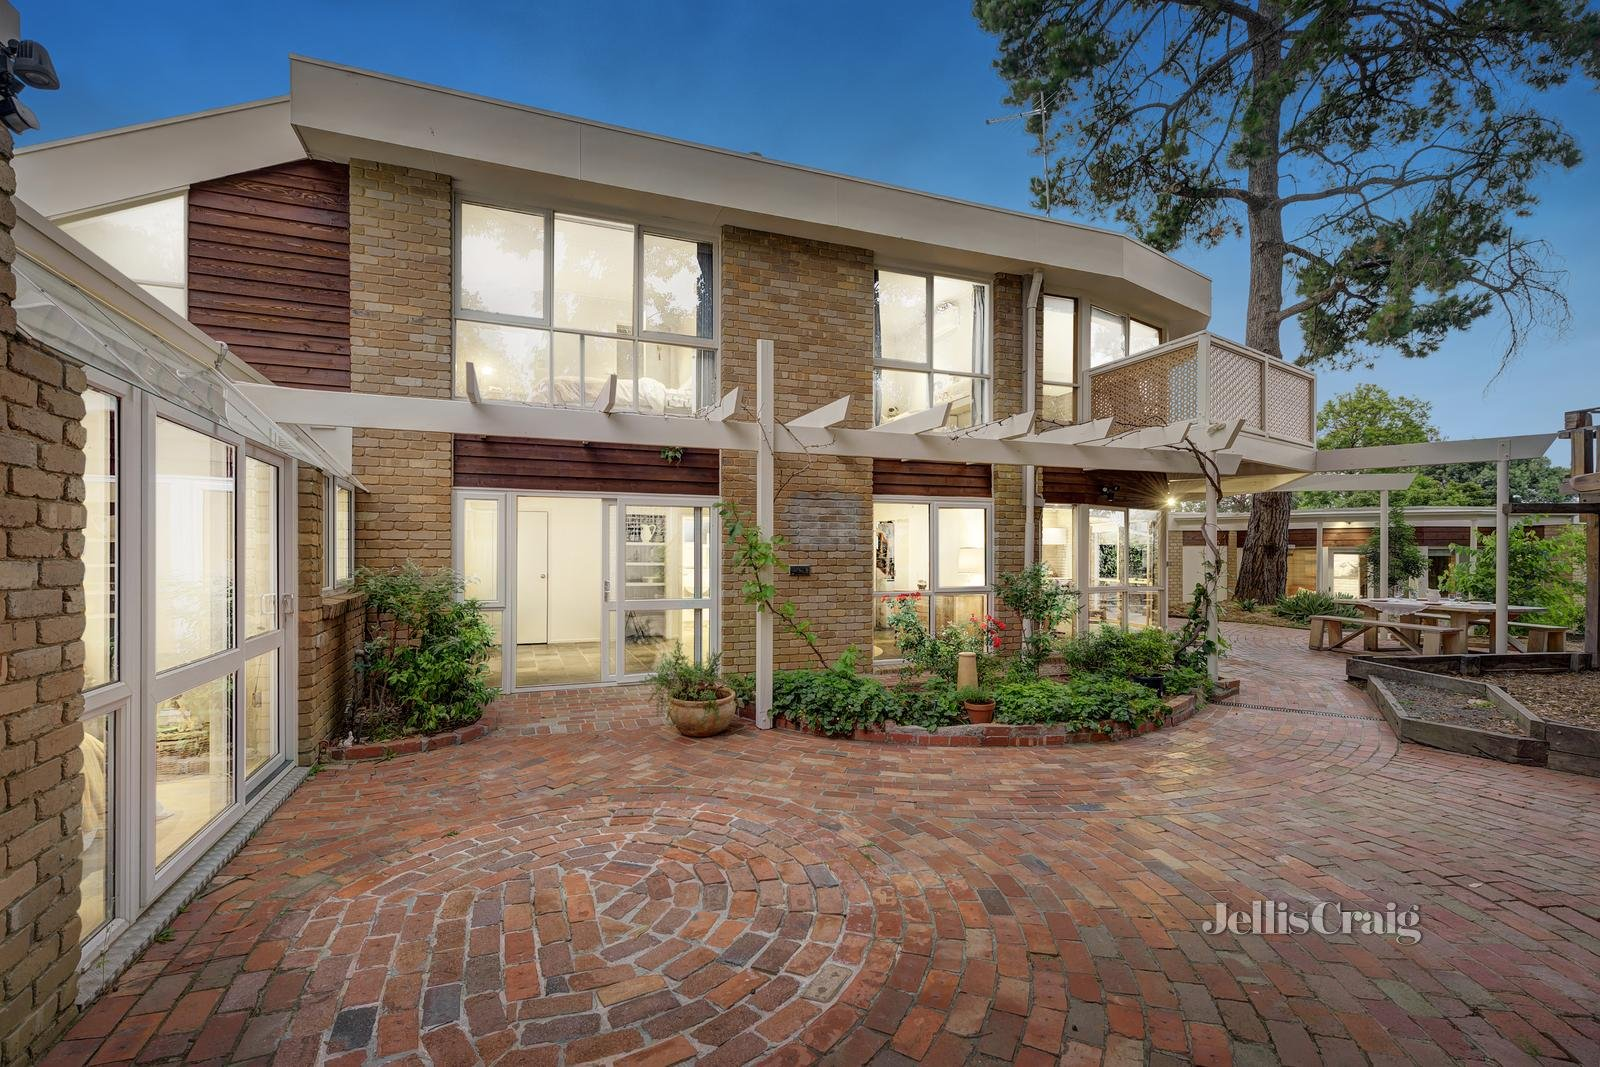 2 Davy Lane, Forest Hill - Print Image 1